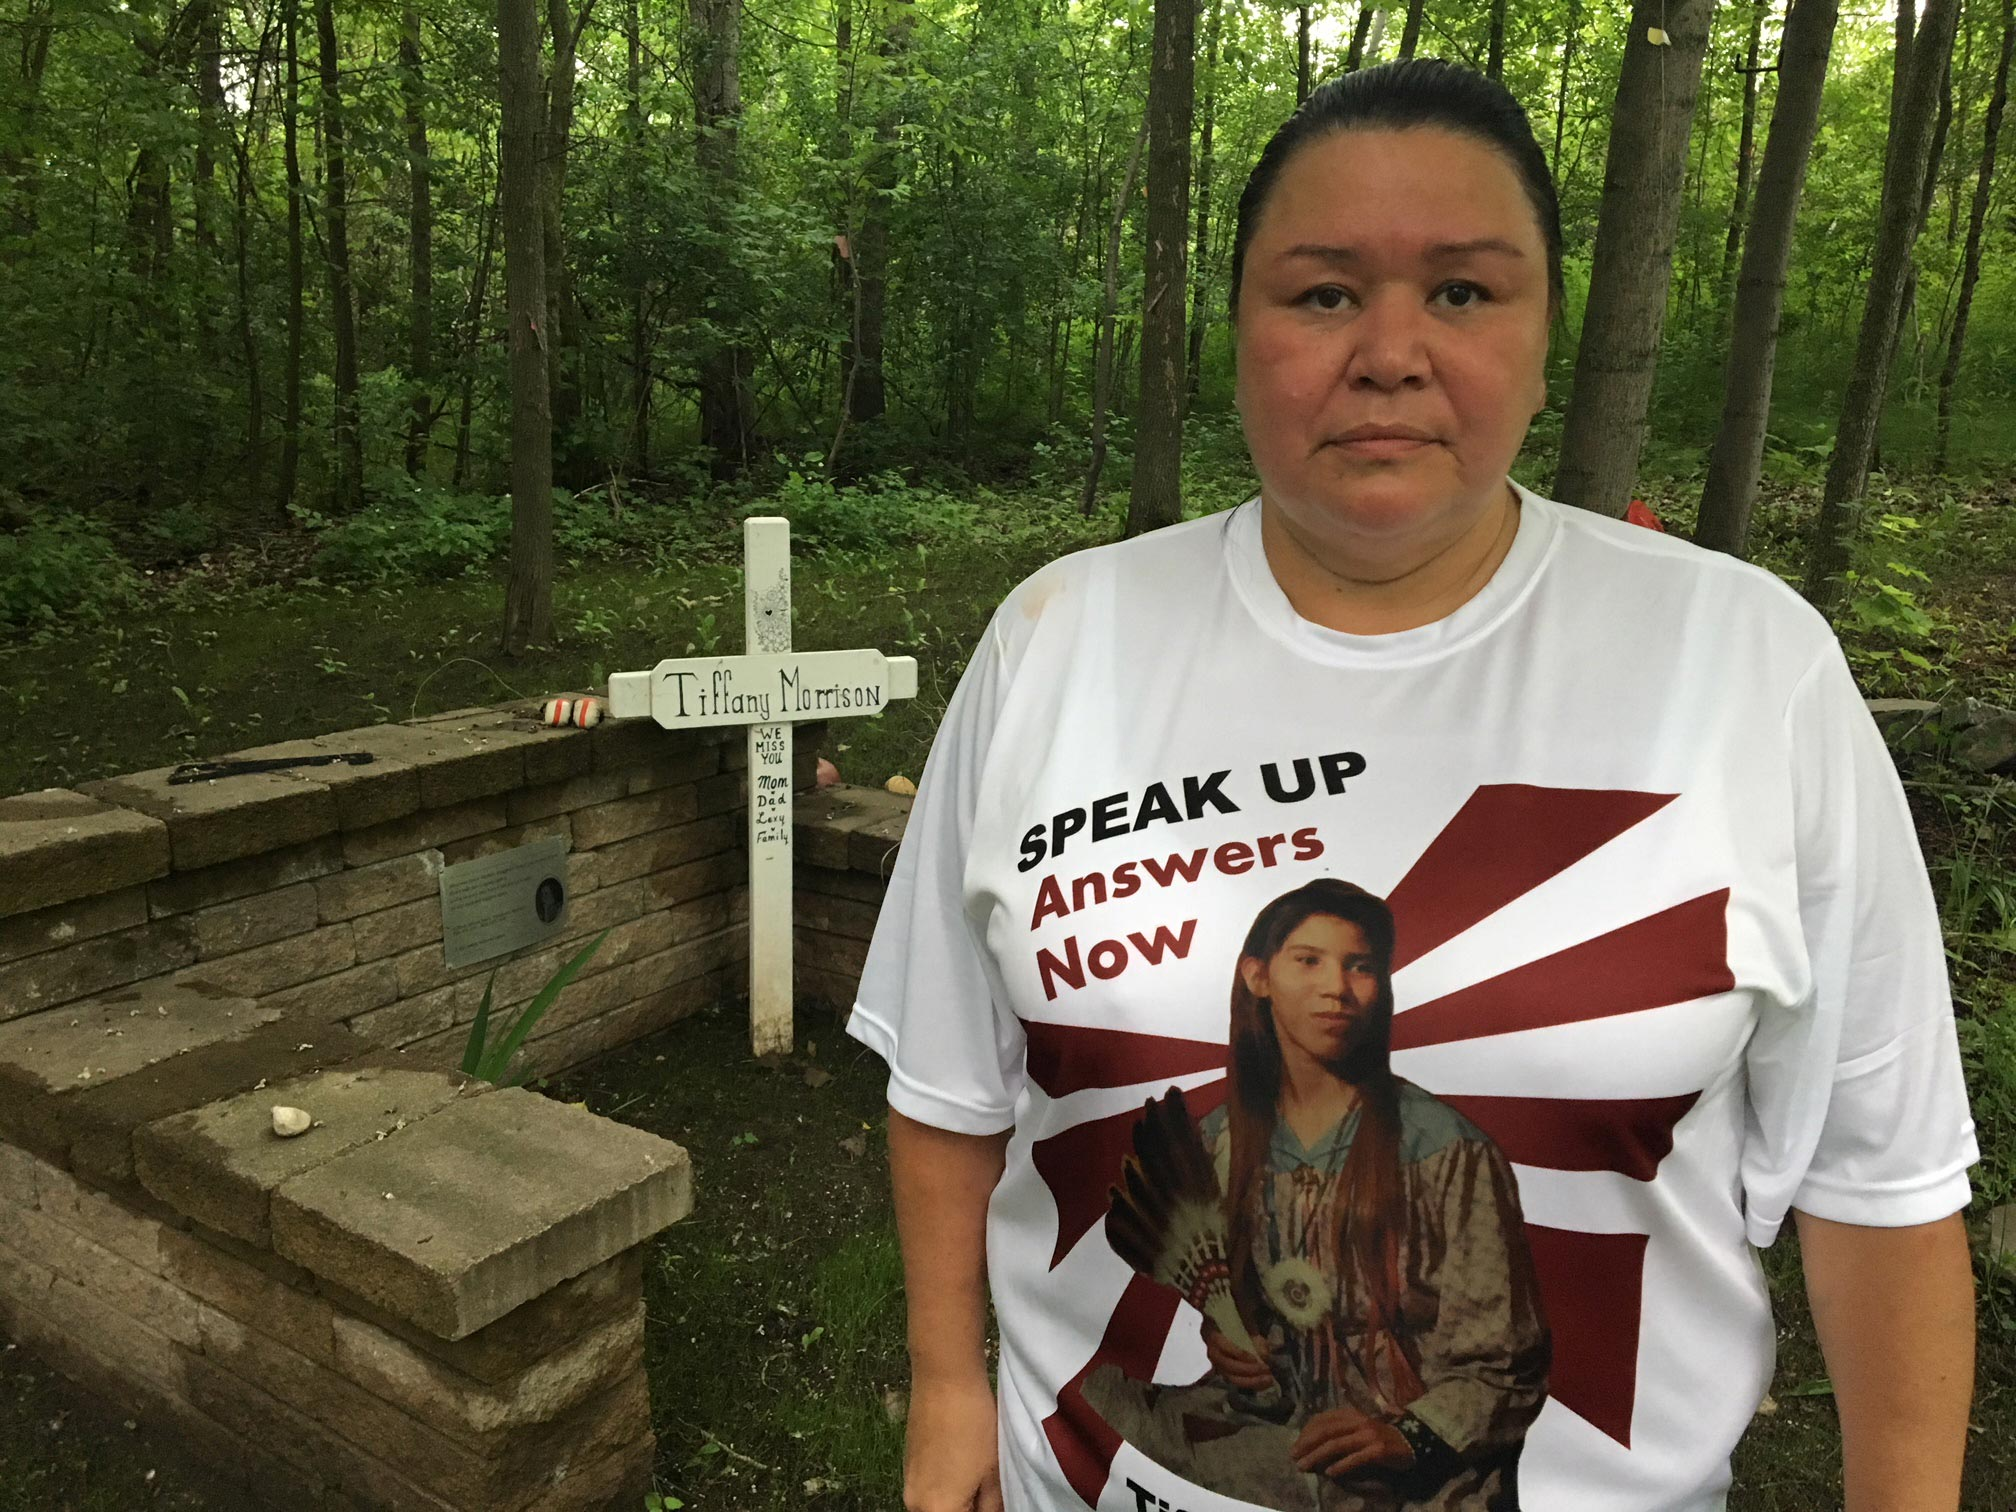 Melanie Morrison stands by the memorial for her sister Tiffany Morrison. Photo: Tom Fennario/APTN